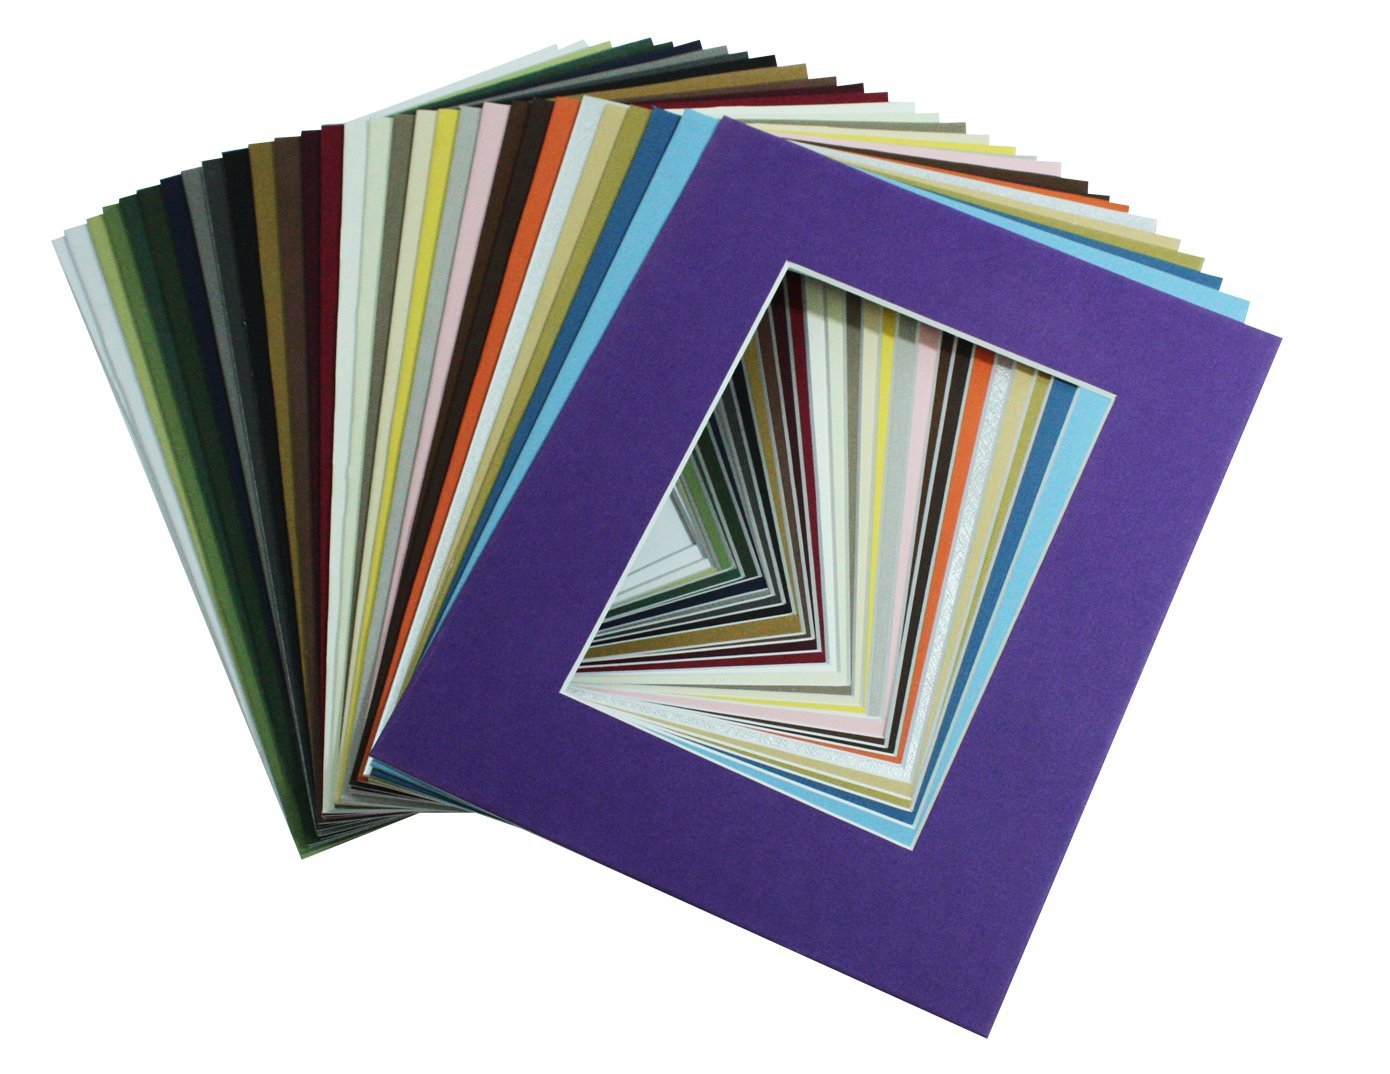 Mat Board Center Pack of 20 8x10 MIXED COLORS White Core Picture Mats Mattes Matting for 5x7 Photo